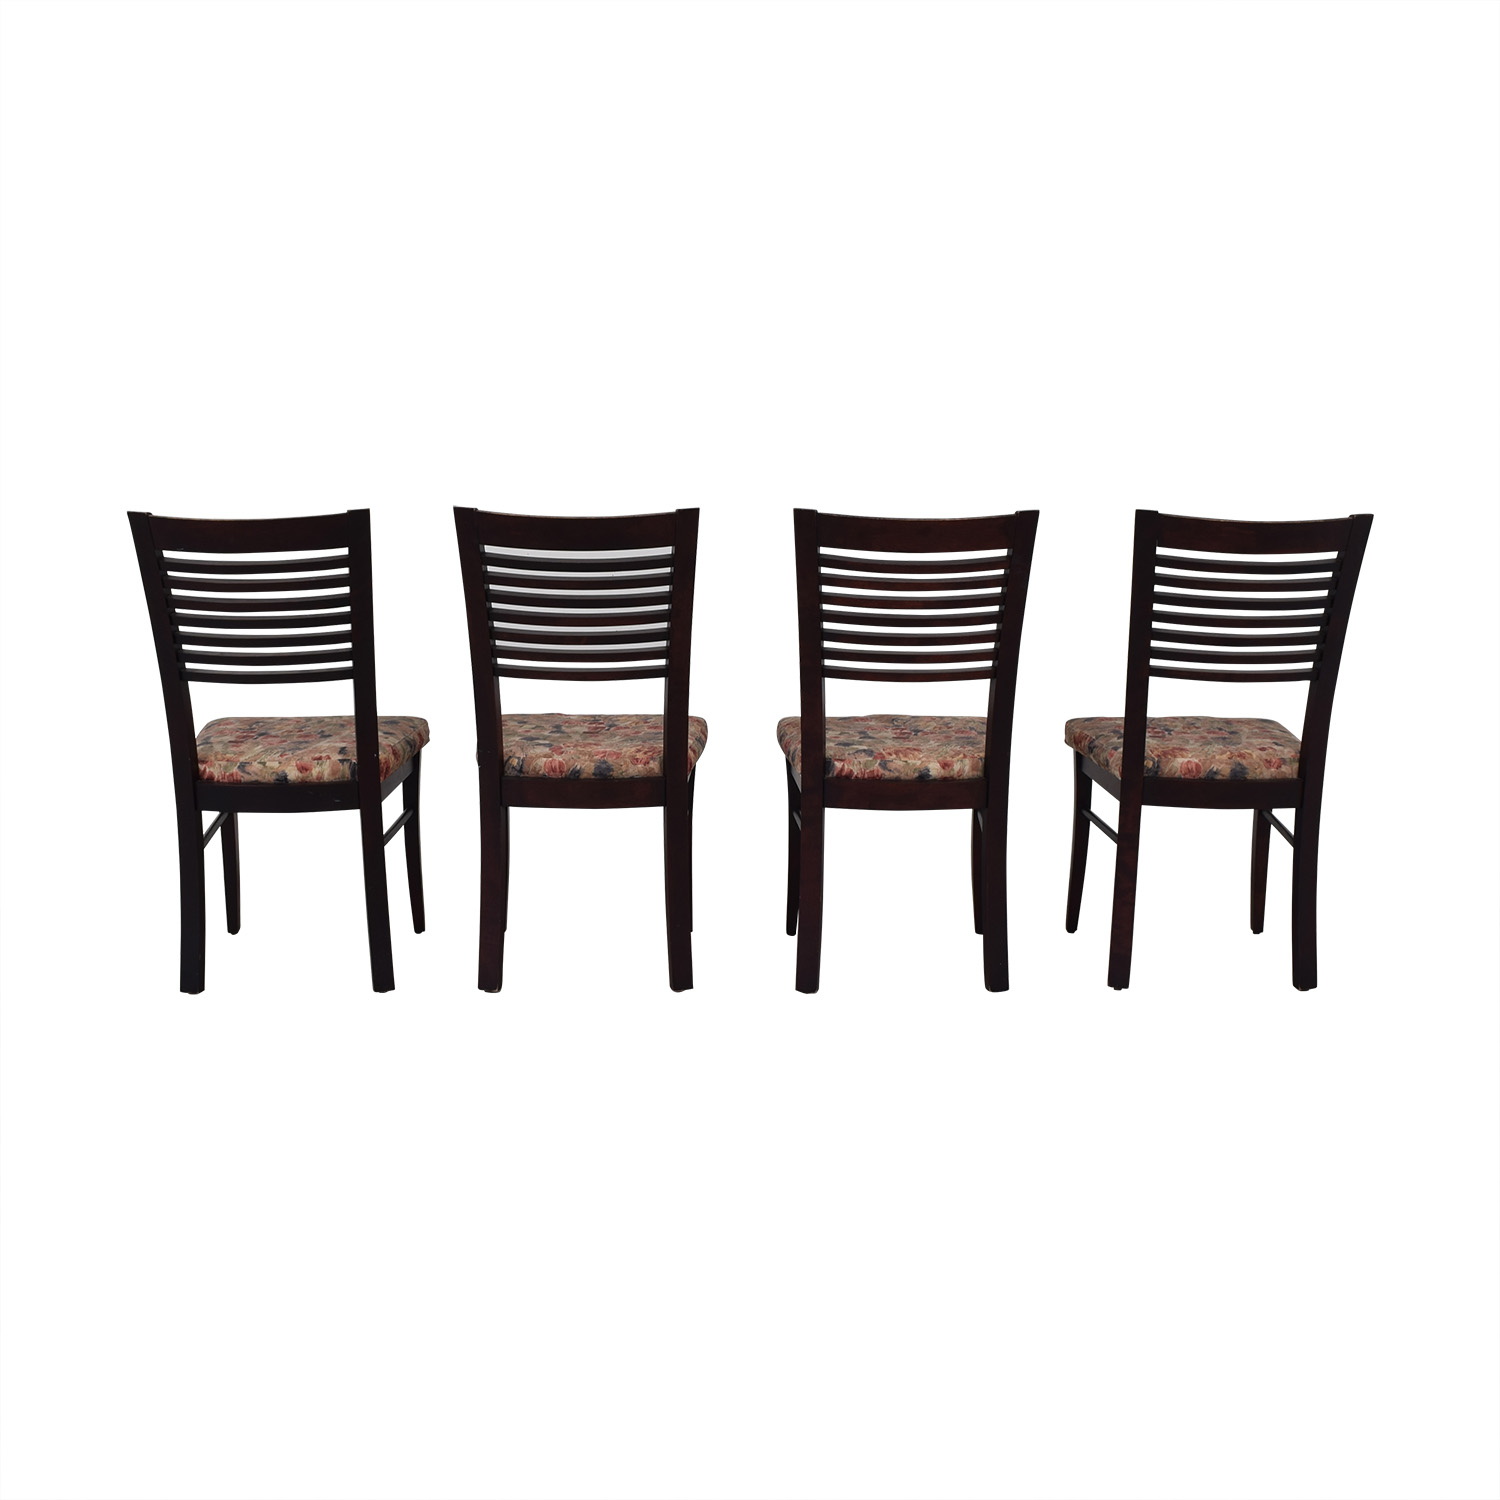 Canadel Canadel Floral Upholstered Dining Chairs nj